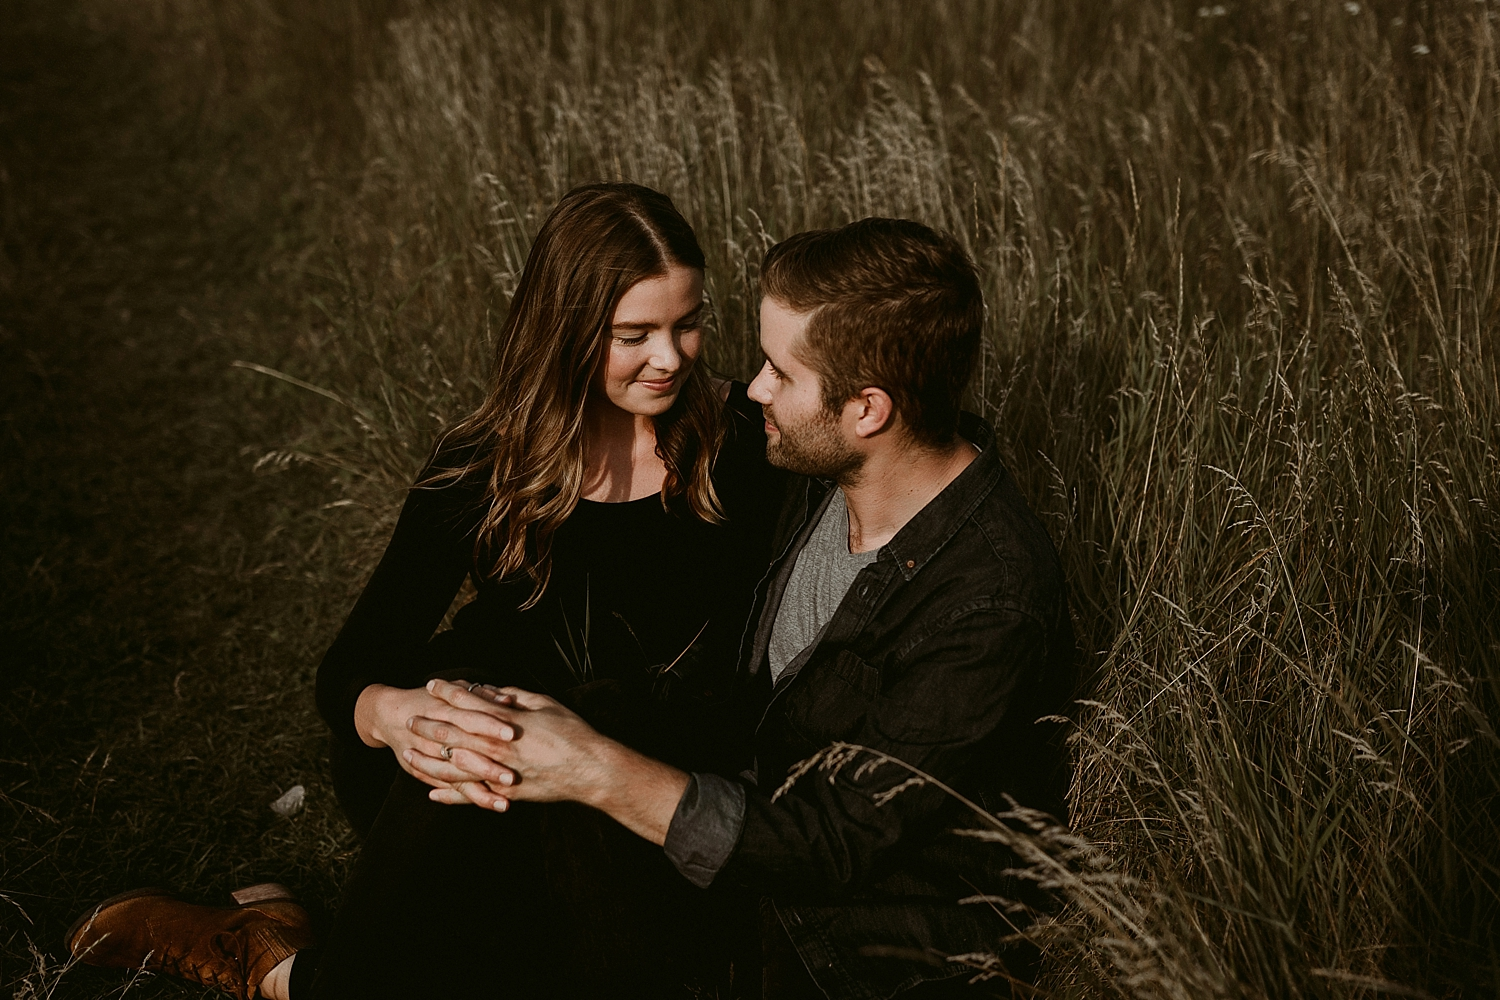 Intimate-Sunset-Couples-Session-121.jpg